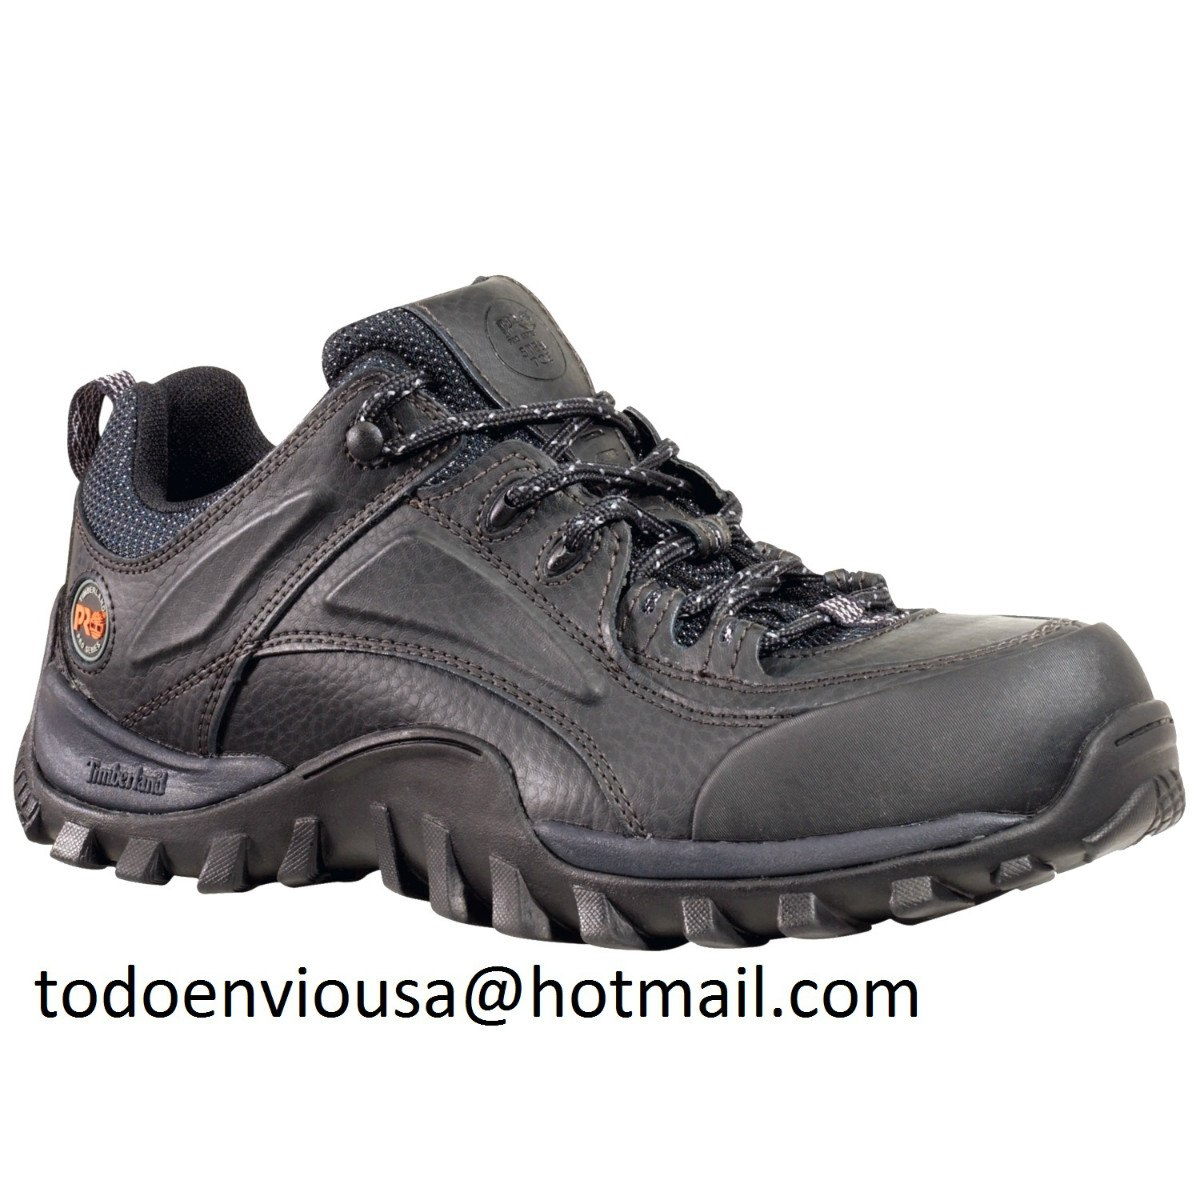 Zapatos de seguridad industrial desyc share the knownledge - Calzado de seguridad ...